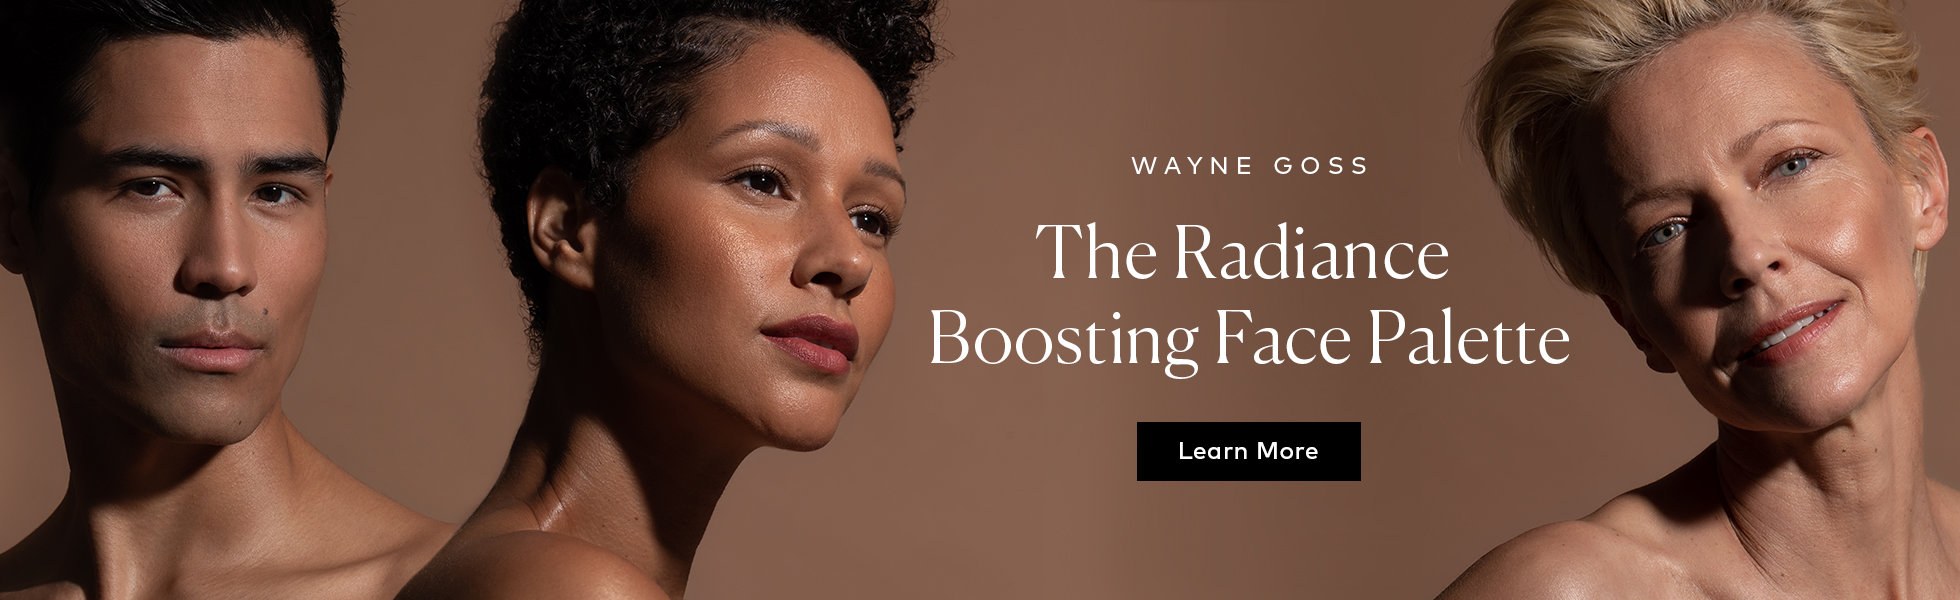 Wayne Goss The Radiance Boosting Face Palette